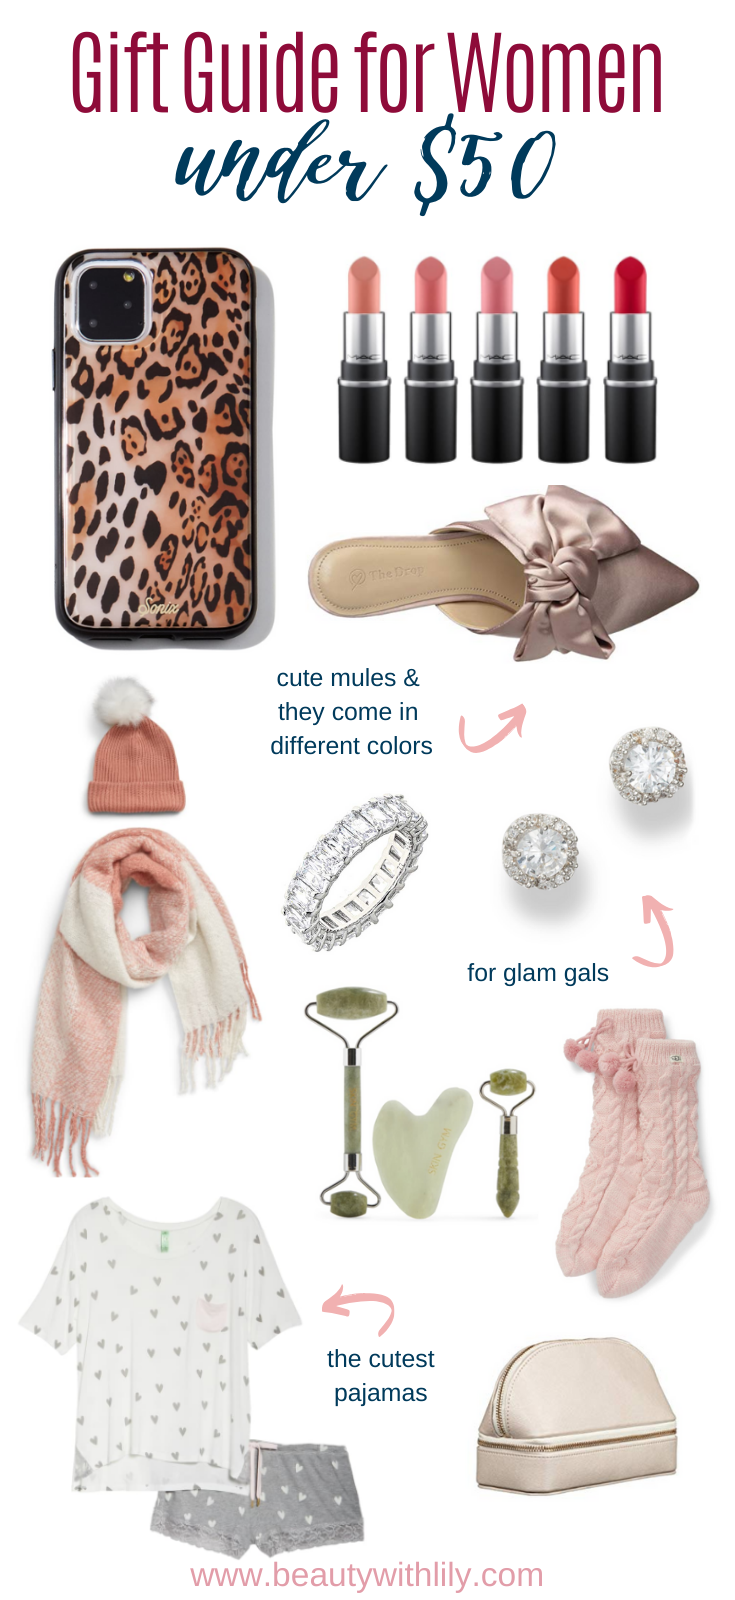 Gift Guide for Women // Gift Ideas for Her // Affordable Gifts for Women // Stocking Stuffers for Women // Christmas Gift Ideas // Gifts Under $100 // Gifts Under $50 // Gifts for All Budgets   Beauty With Lily